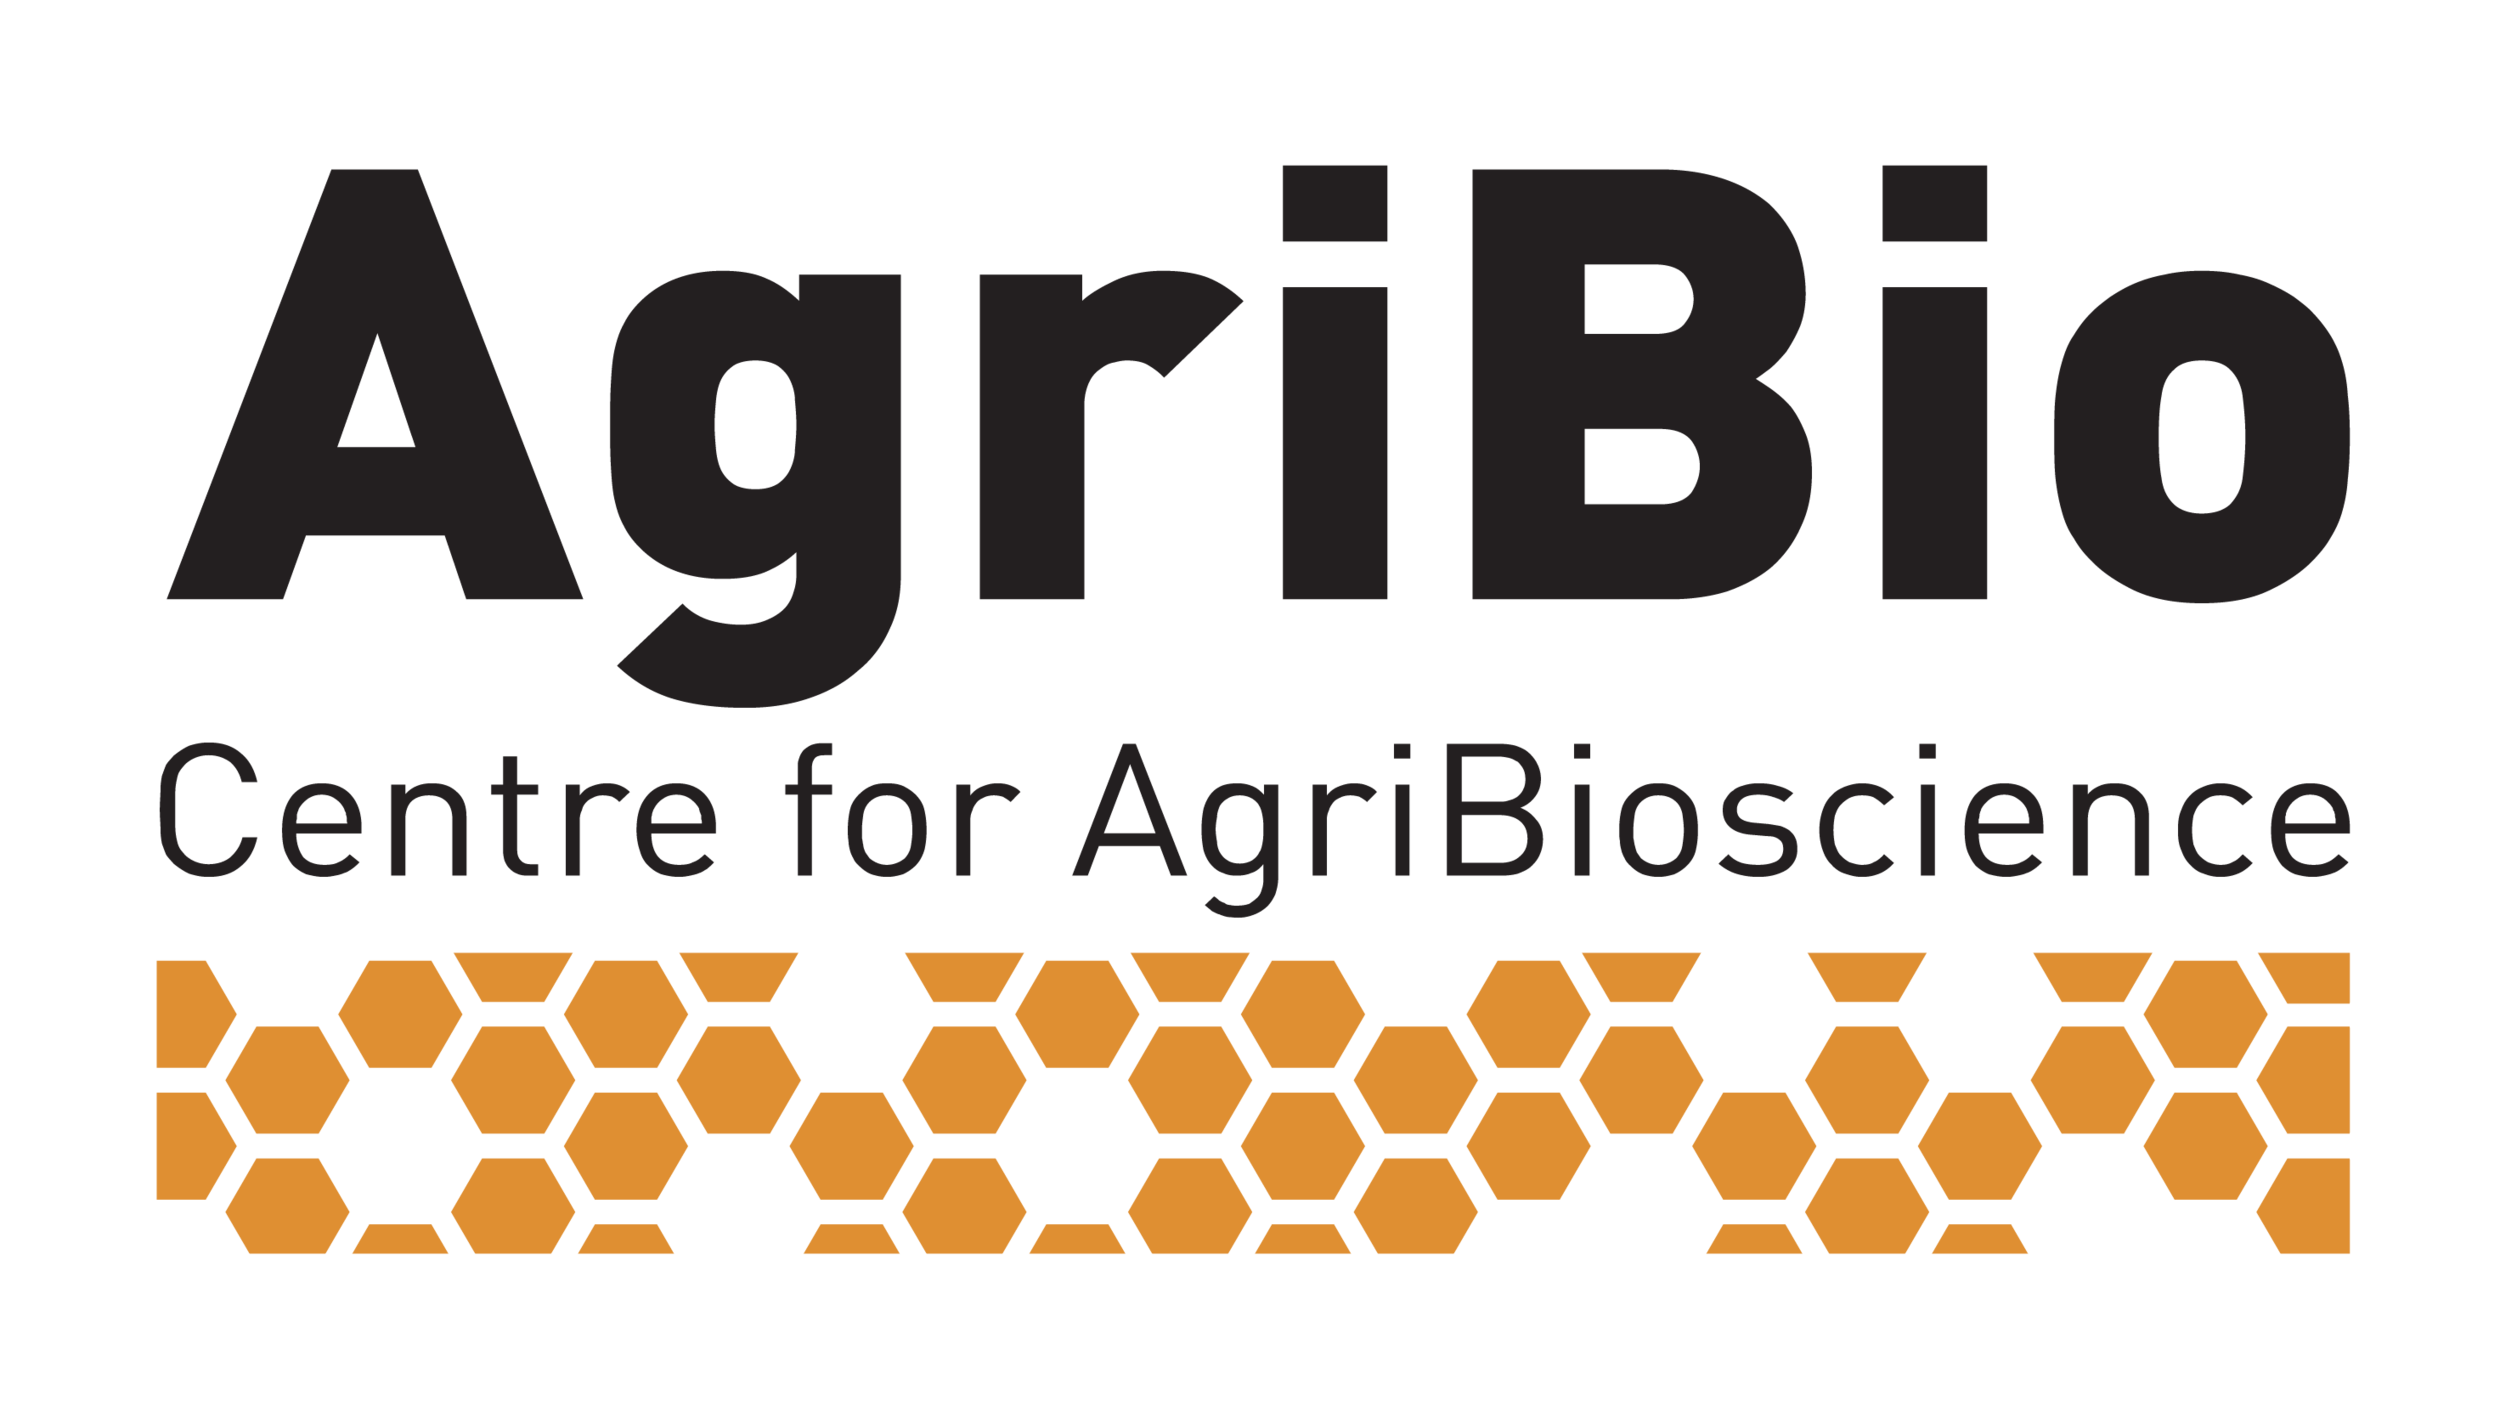 Official_AgriBio logo_CMYK-02-02.png